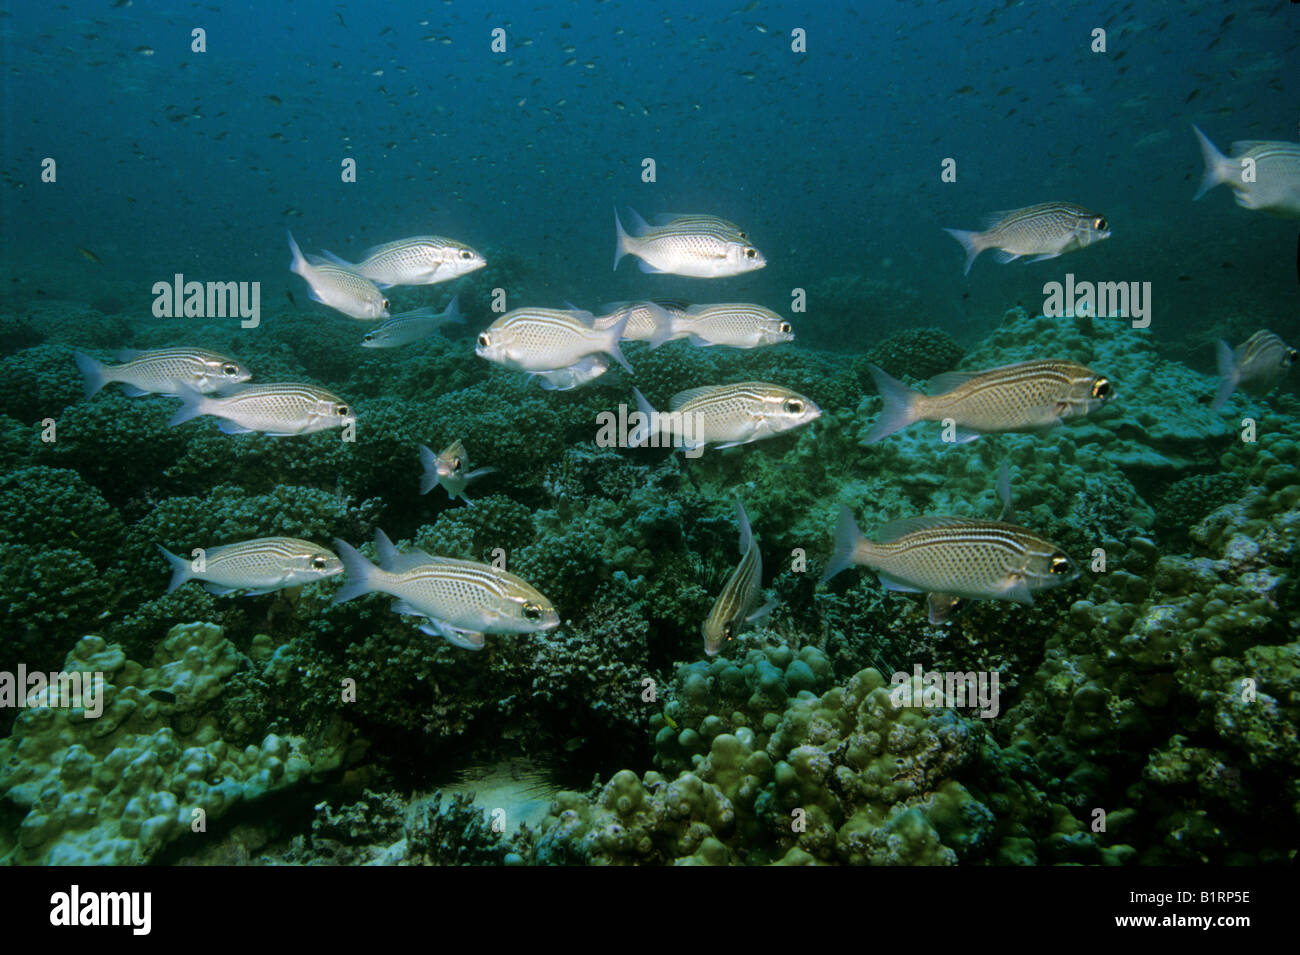 School of Arabian Bonocle Breams (Scolopsis ghanam) swimming over a coral reef, Oman, Middle East, Indian Ocean Stock Photo